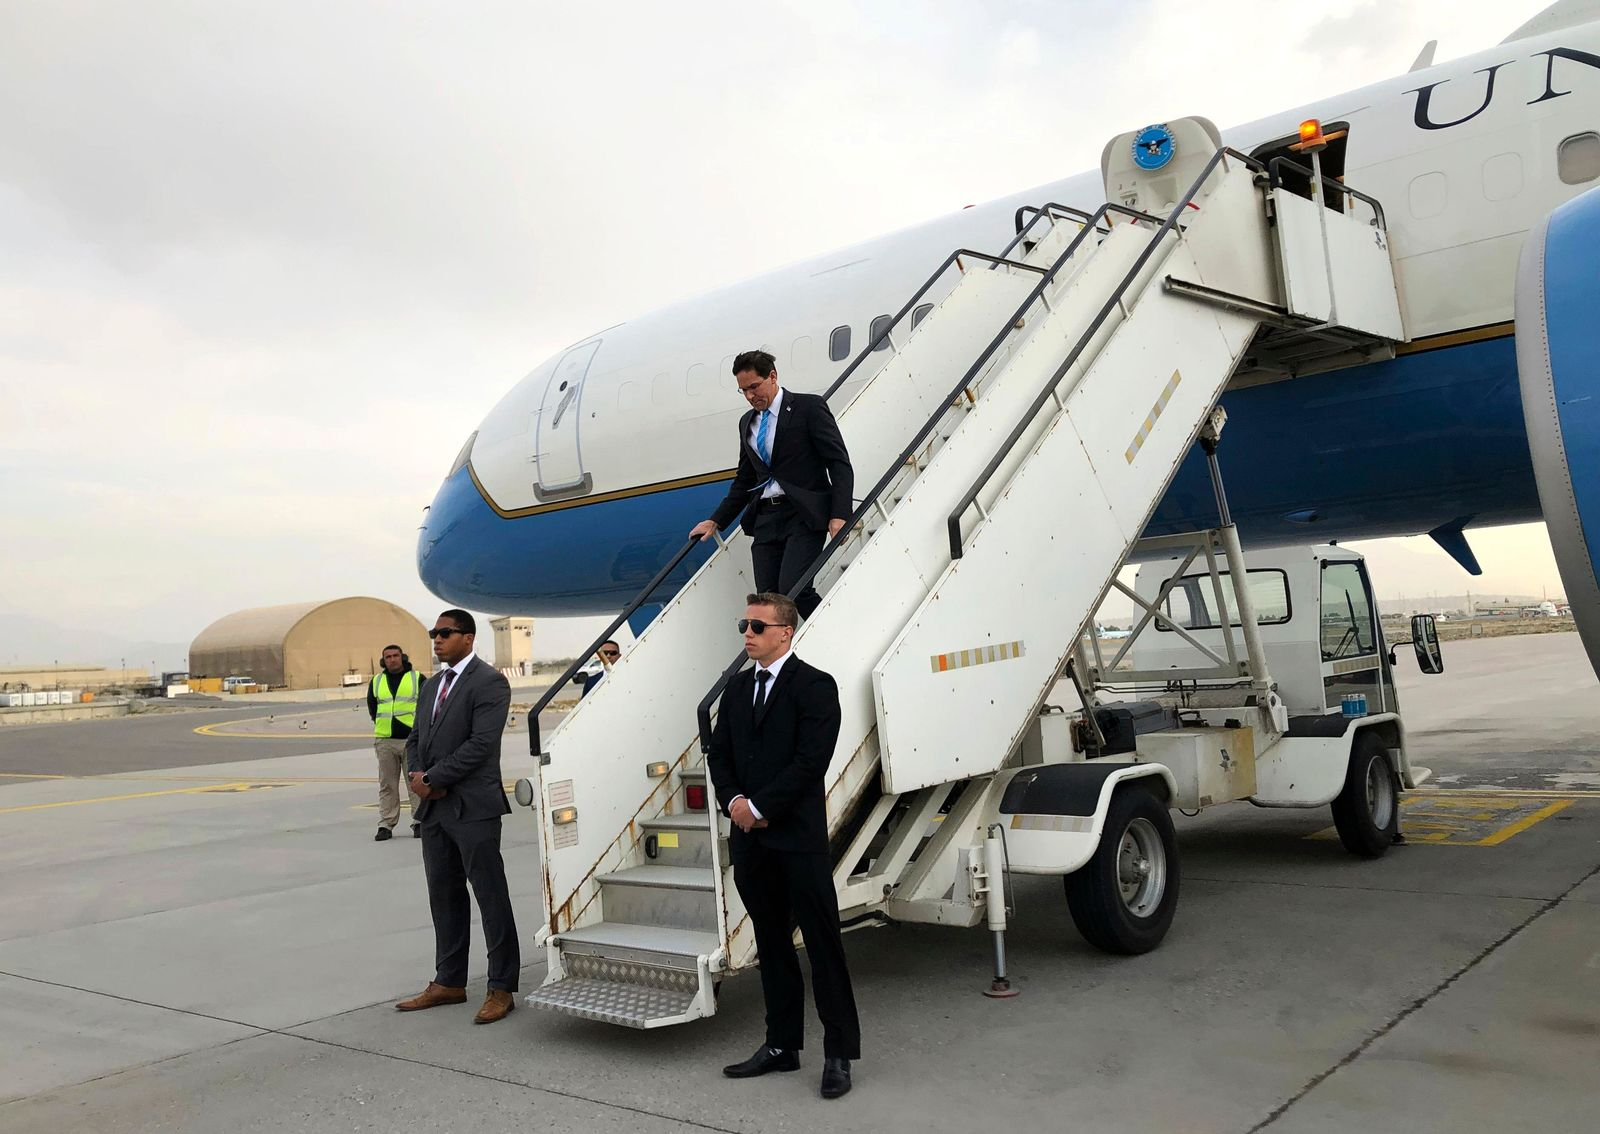 U.S. Defense Secretary Mark Esper, center, arrives in Kabul, Afghanistan, Sunday, Oct. 20, 2019. Esper arrived Sunday in Afghanistan, where stalled peace talks with the Taliban and persistent violent attacks by the insurgent group and Islamic State militants have complicated the Trump administration's pledge to withdraw more than 5,000 American troops. He told reporters traveling with him that he believes the U.S. can reduce its force in Afghanistan without hurting the counterterrorism fight against al-Qaida and the Islamic State group. (AP Photo/Lolita C. Balbor)